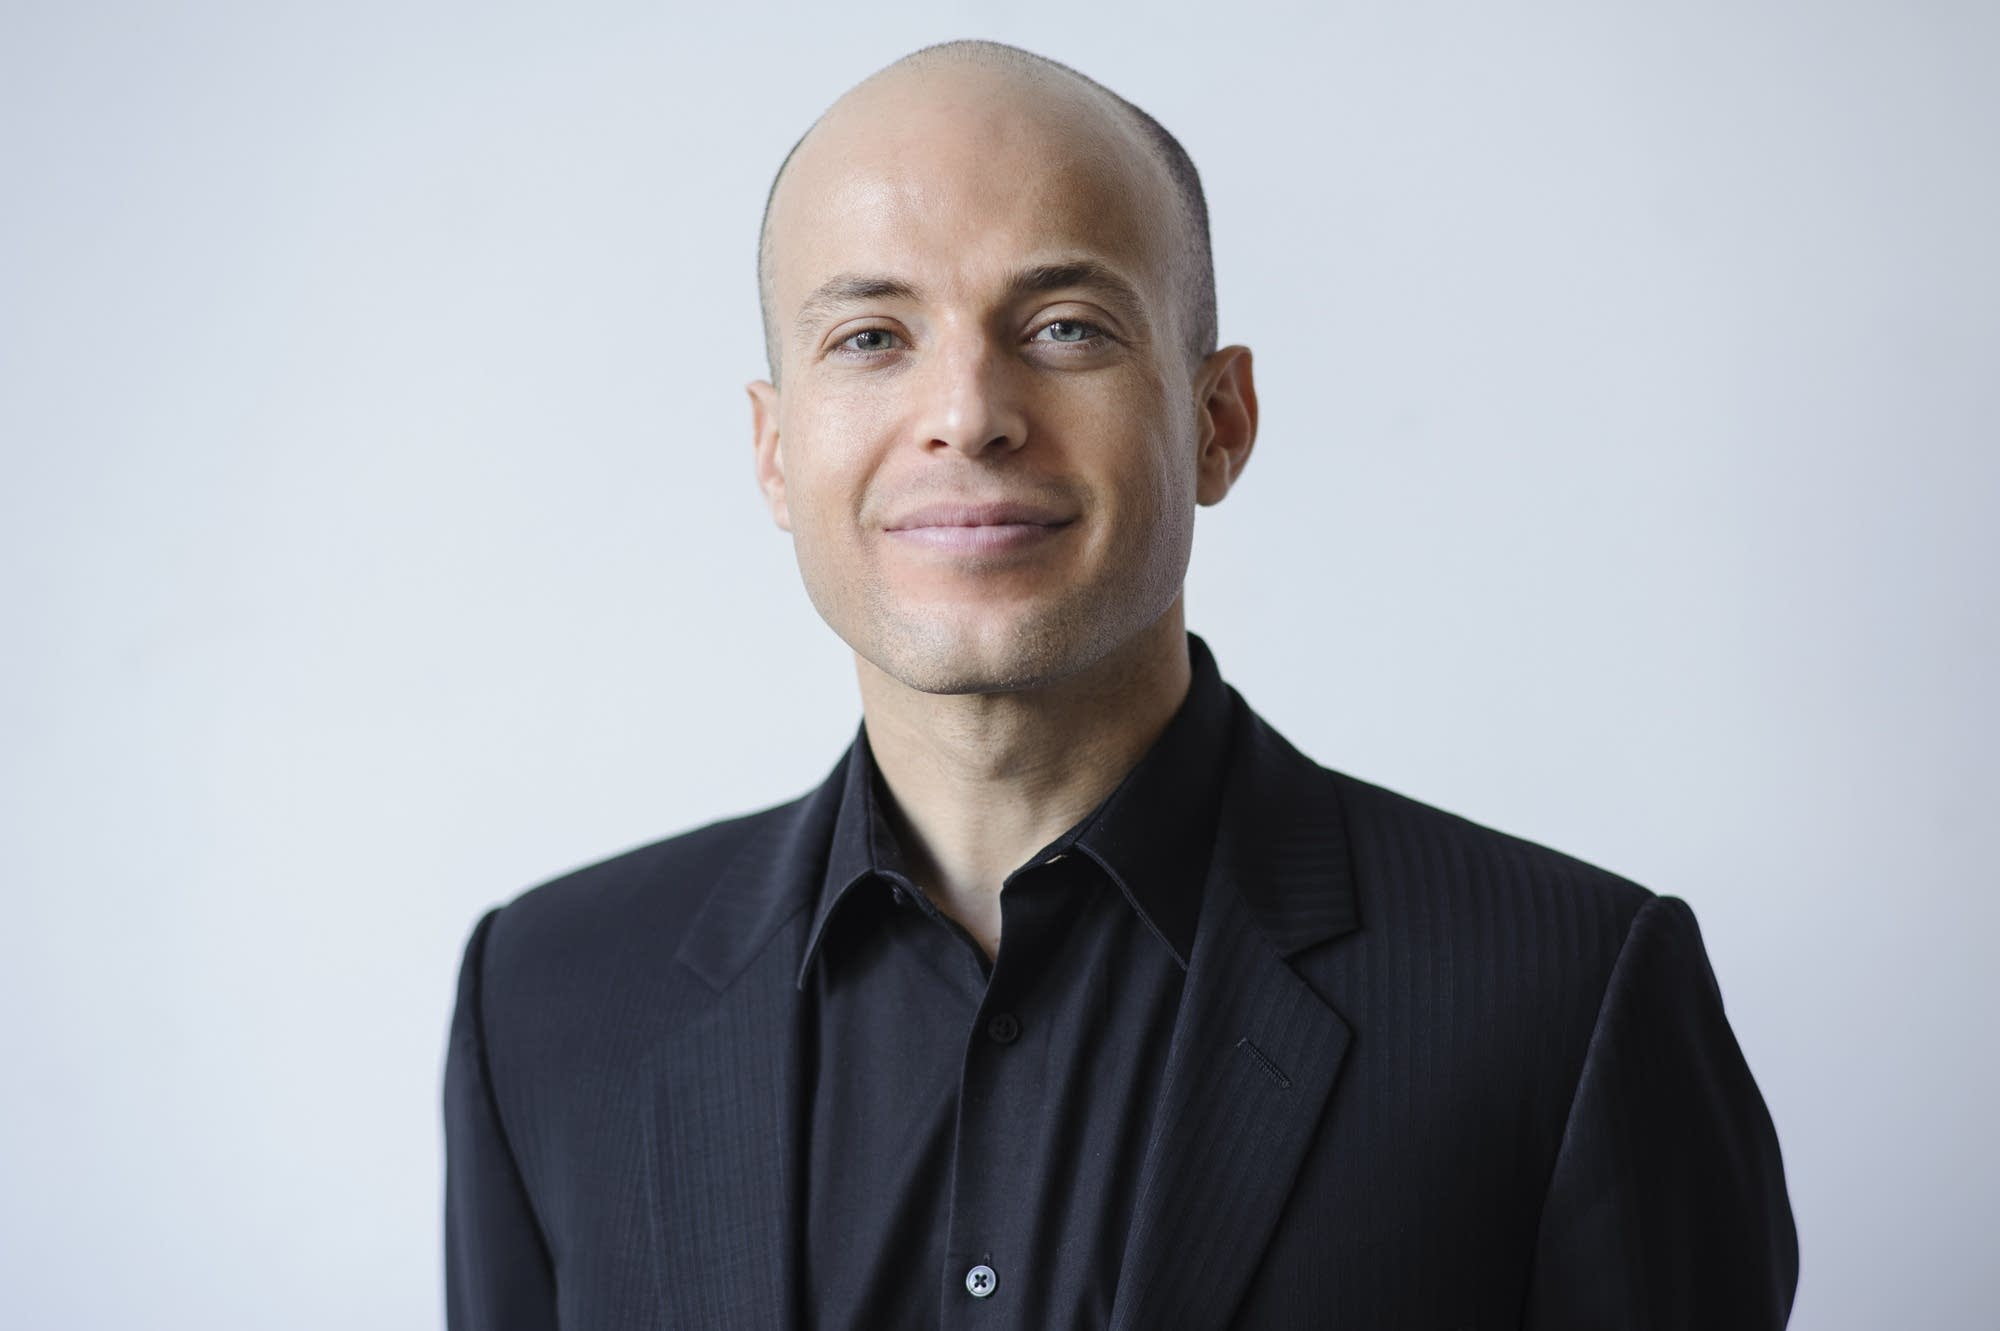 Pianist Orion Weiss